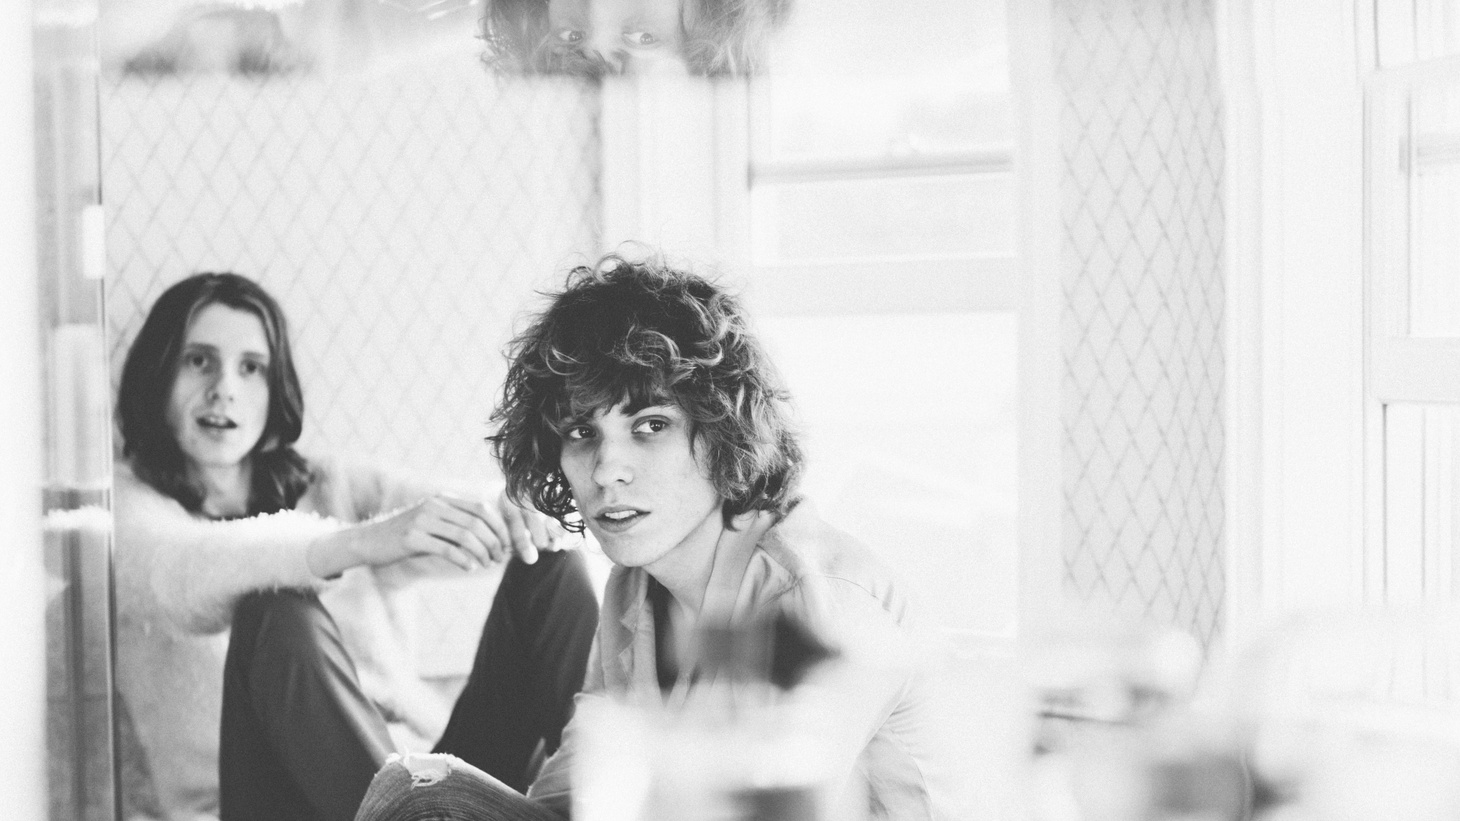 Local heroes Foxygen offer up another dose of catchy, psychedelic, overdriven freakouts!